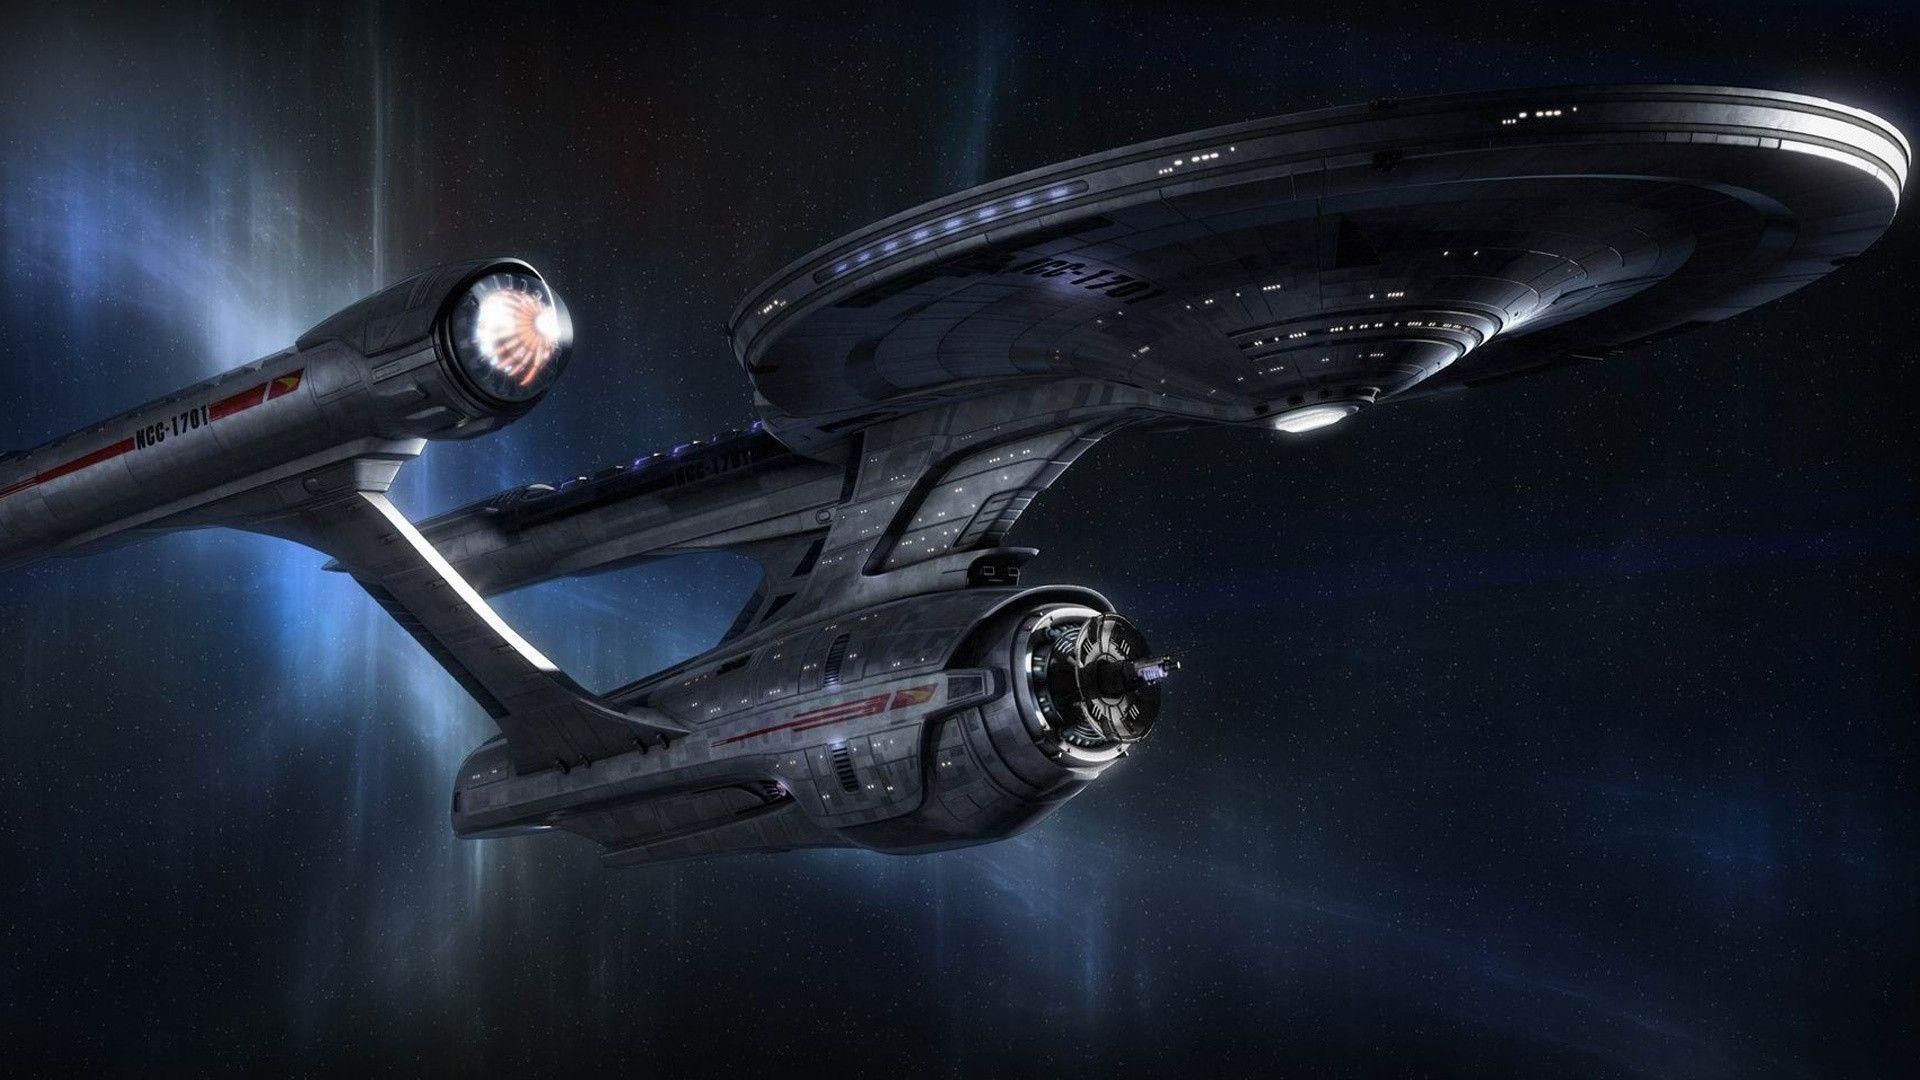 1920x1080 Fonds d'écran Star Trek : tous les wallpapers Star Trek